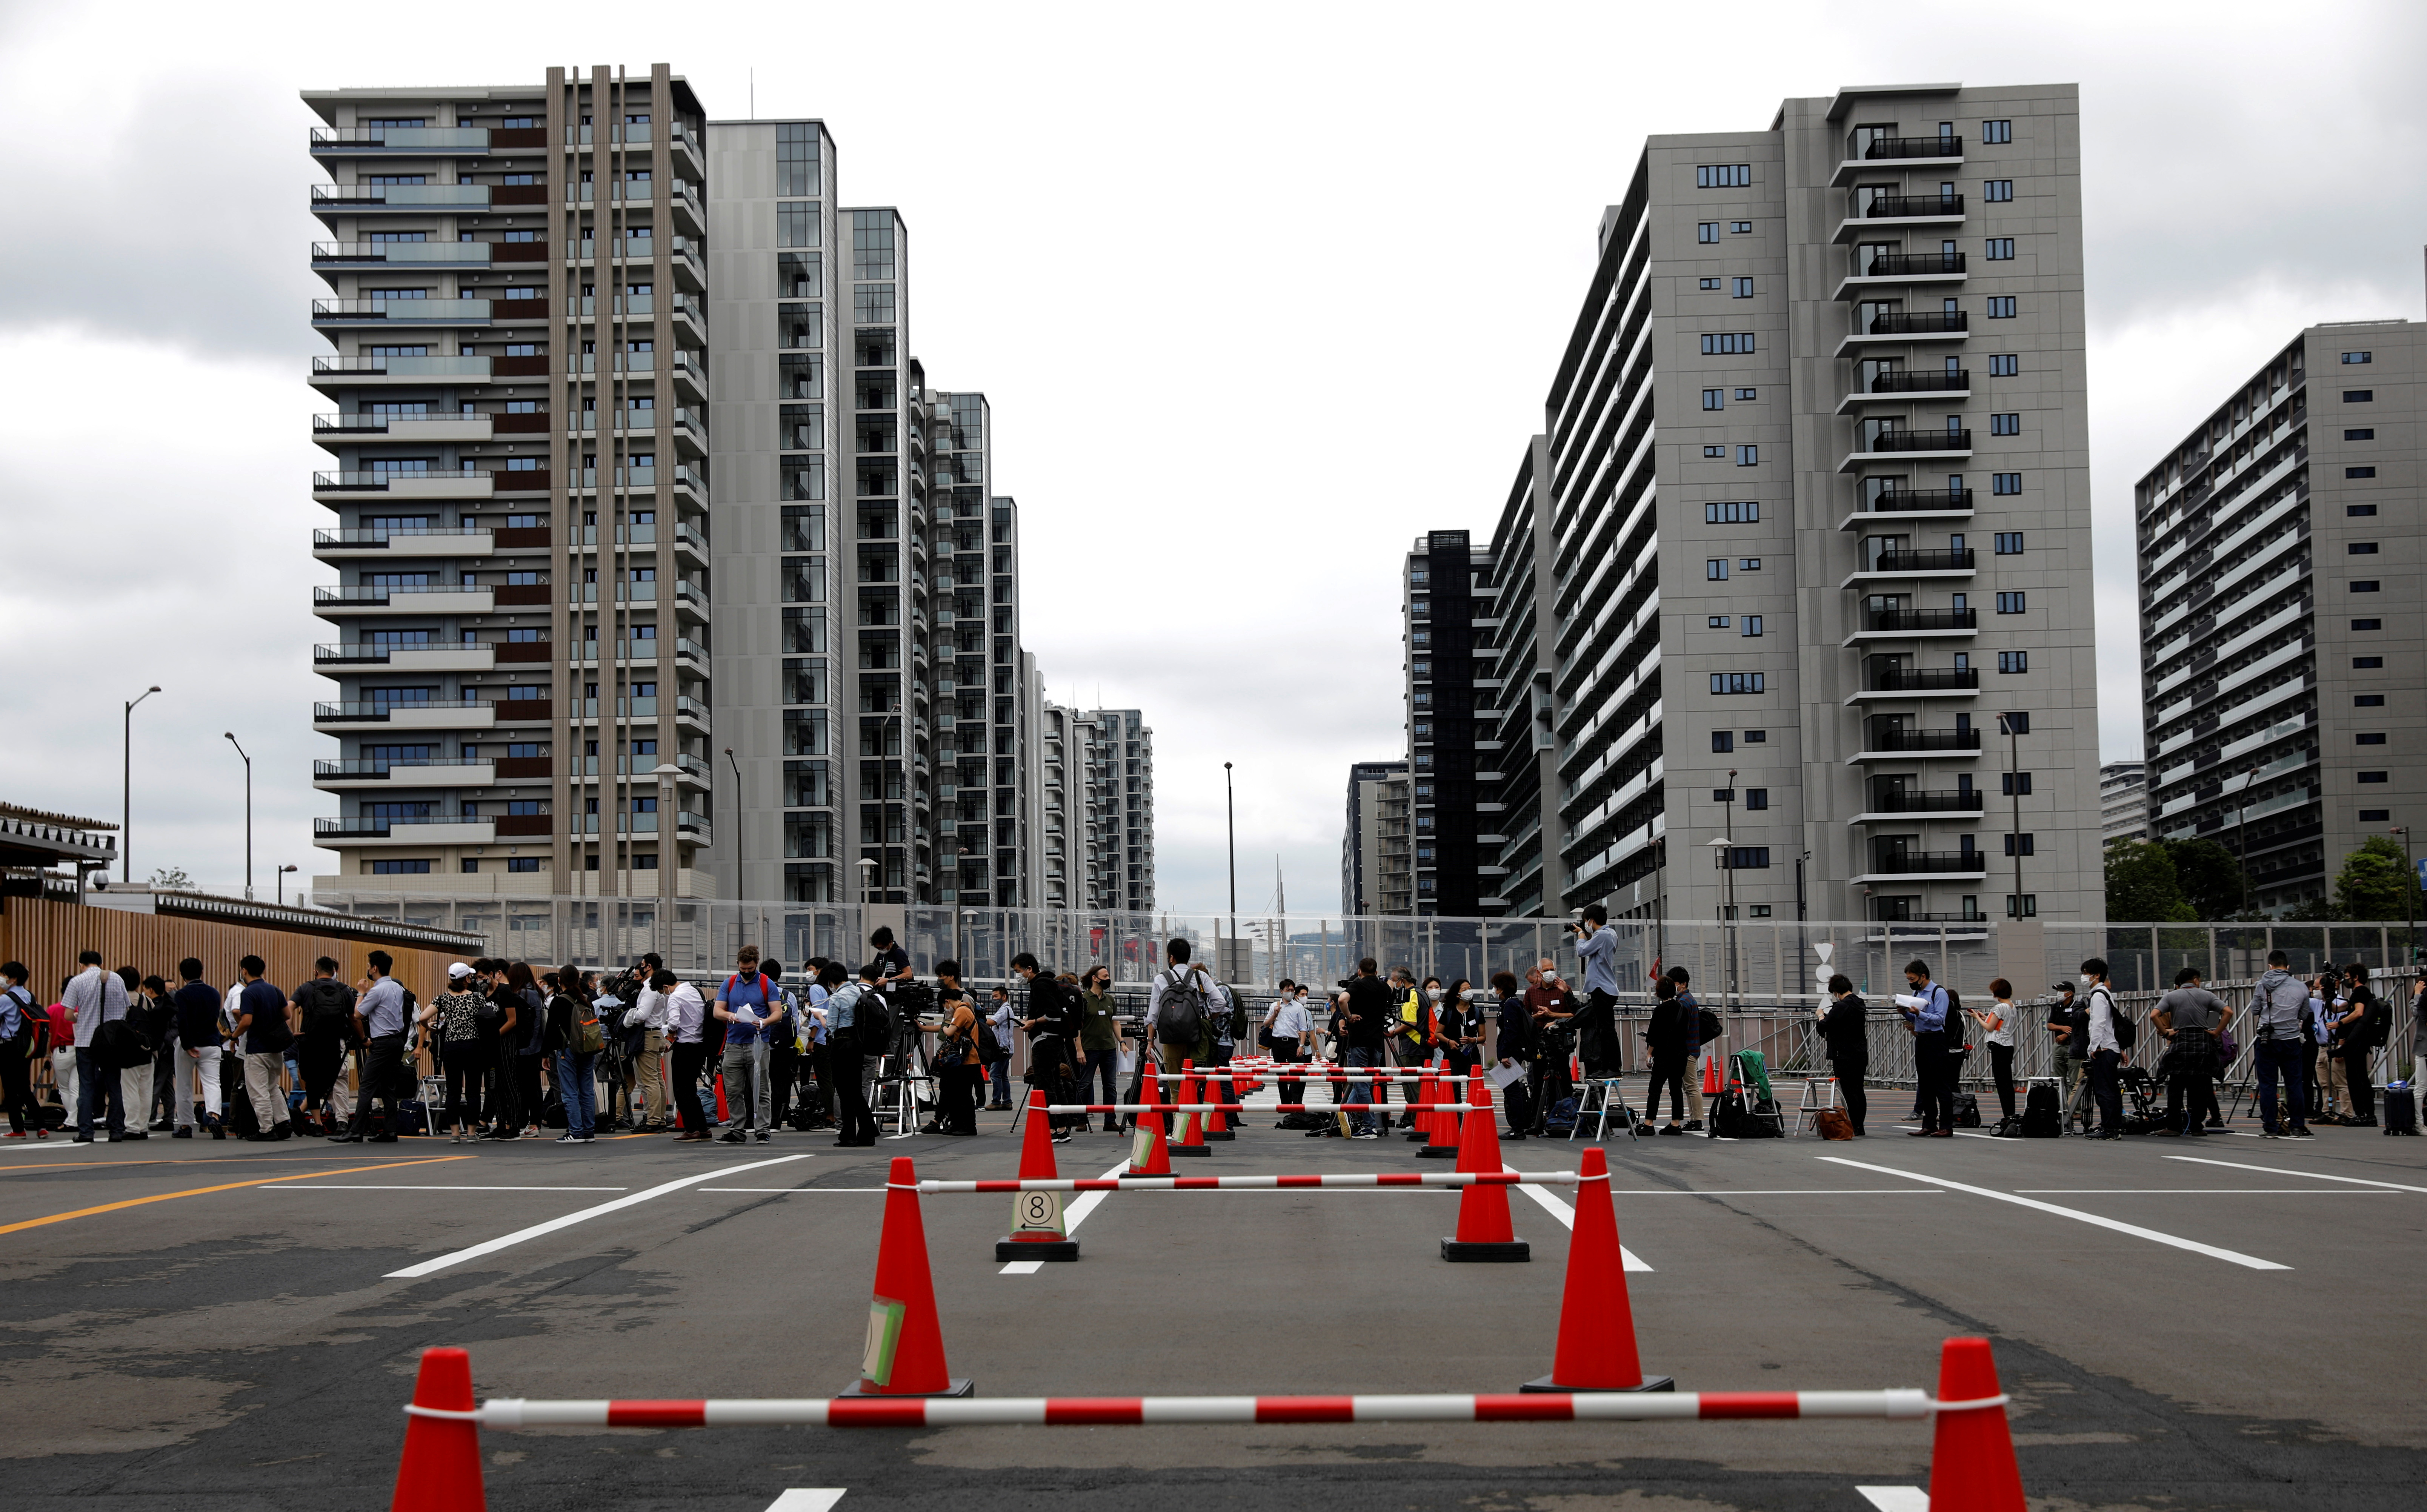 Journalists stand in a line to enter the village plaza of the Tokyo 2020 Olympic and Paralympic Village for a press tour in Tokyo, Japan, June 20, 2021.   REUTERS/Kim Kyung-Hoon